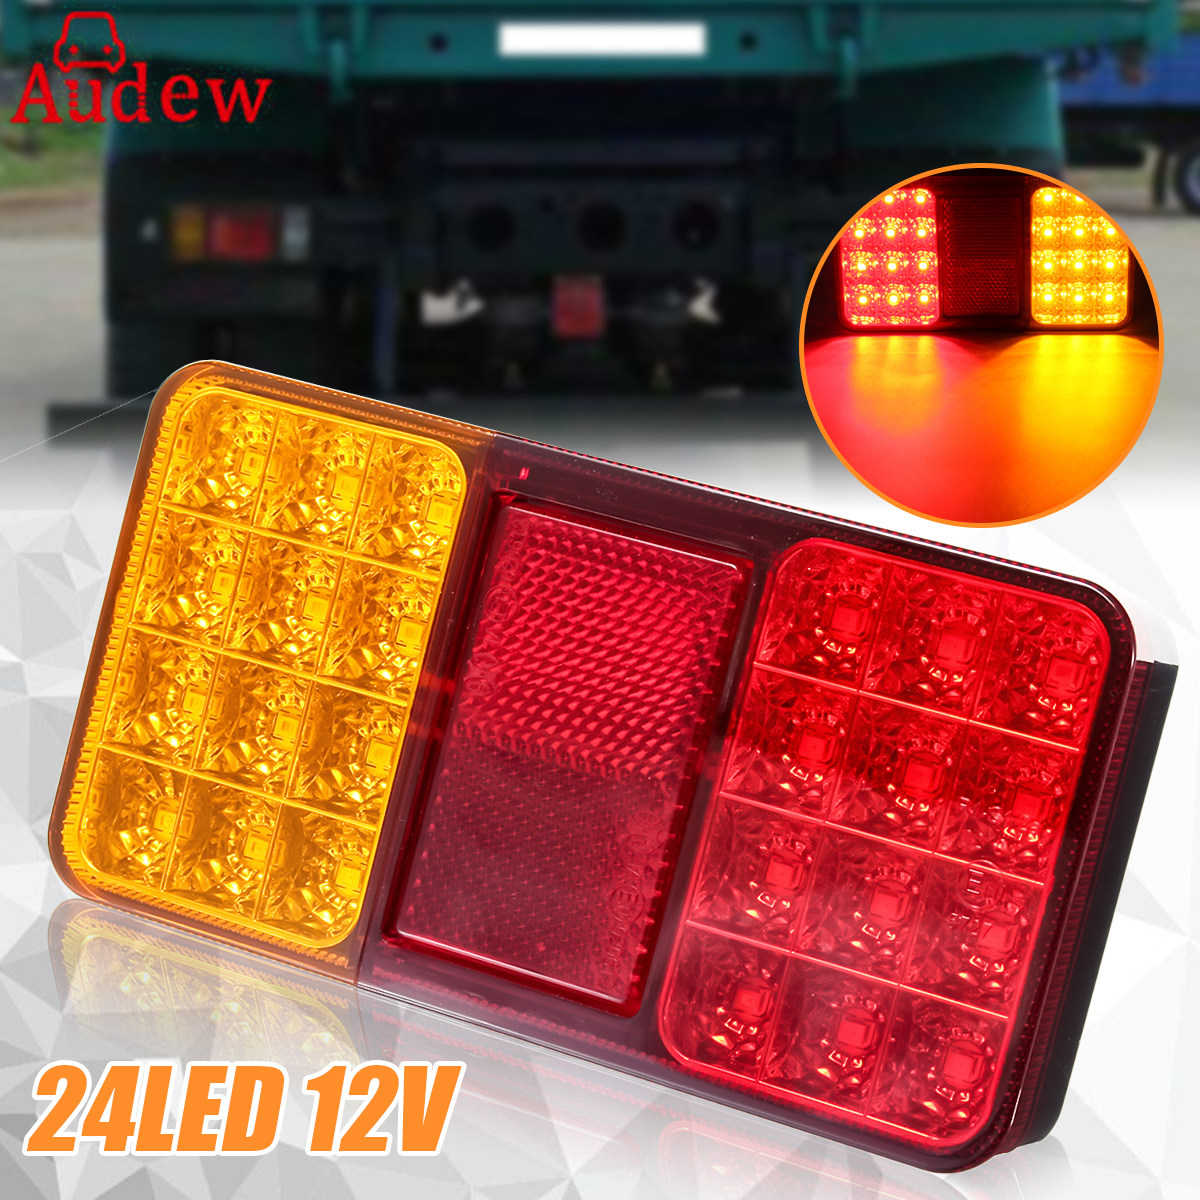 24LED 12V Trailer Truck Rear Lights Brake Stop Tail Turn Indicator LED Lamps For Car Trailers Trucks Utes Boats купить в Москве 2019